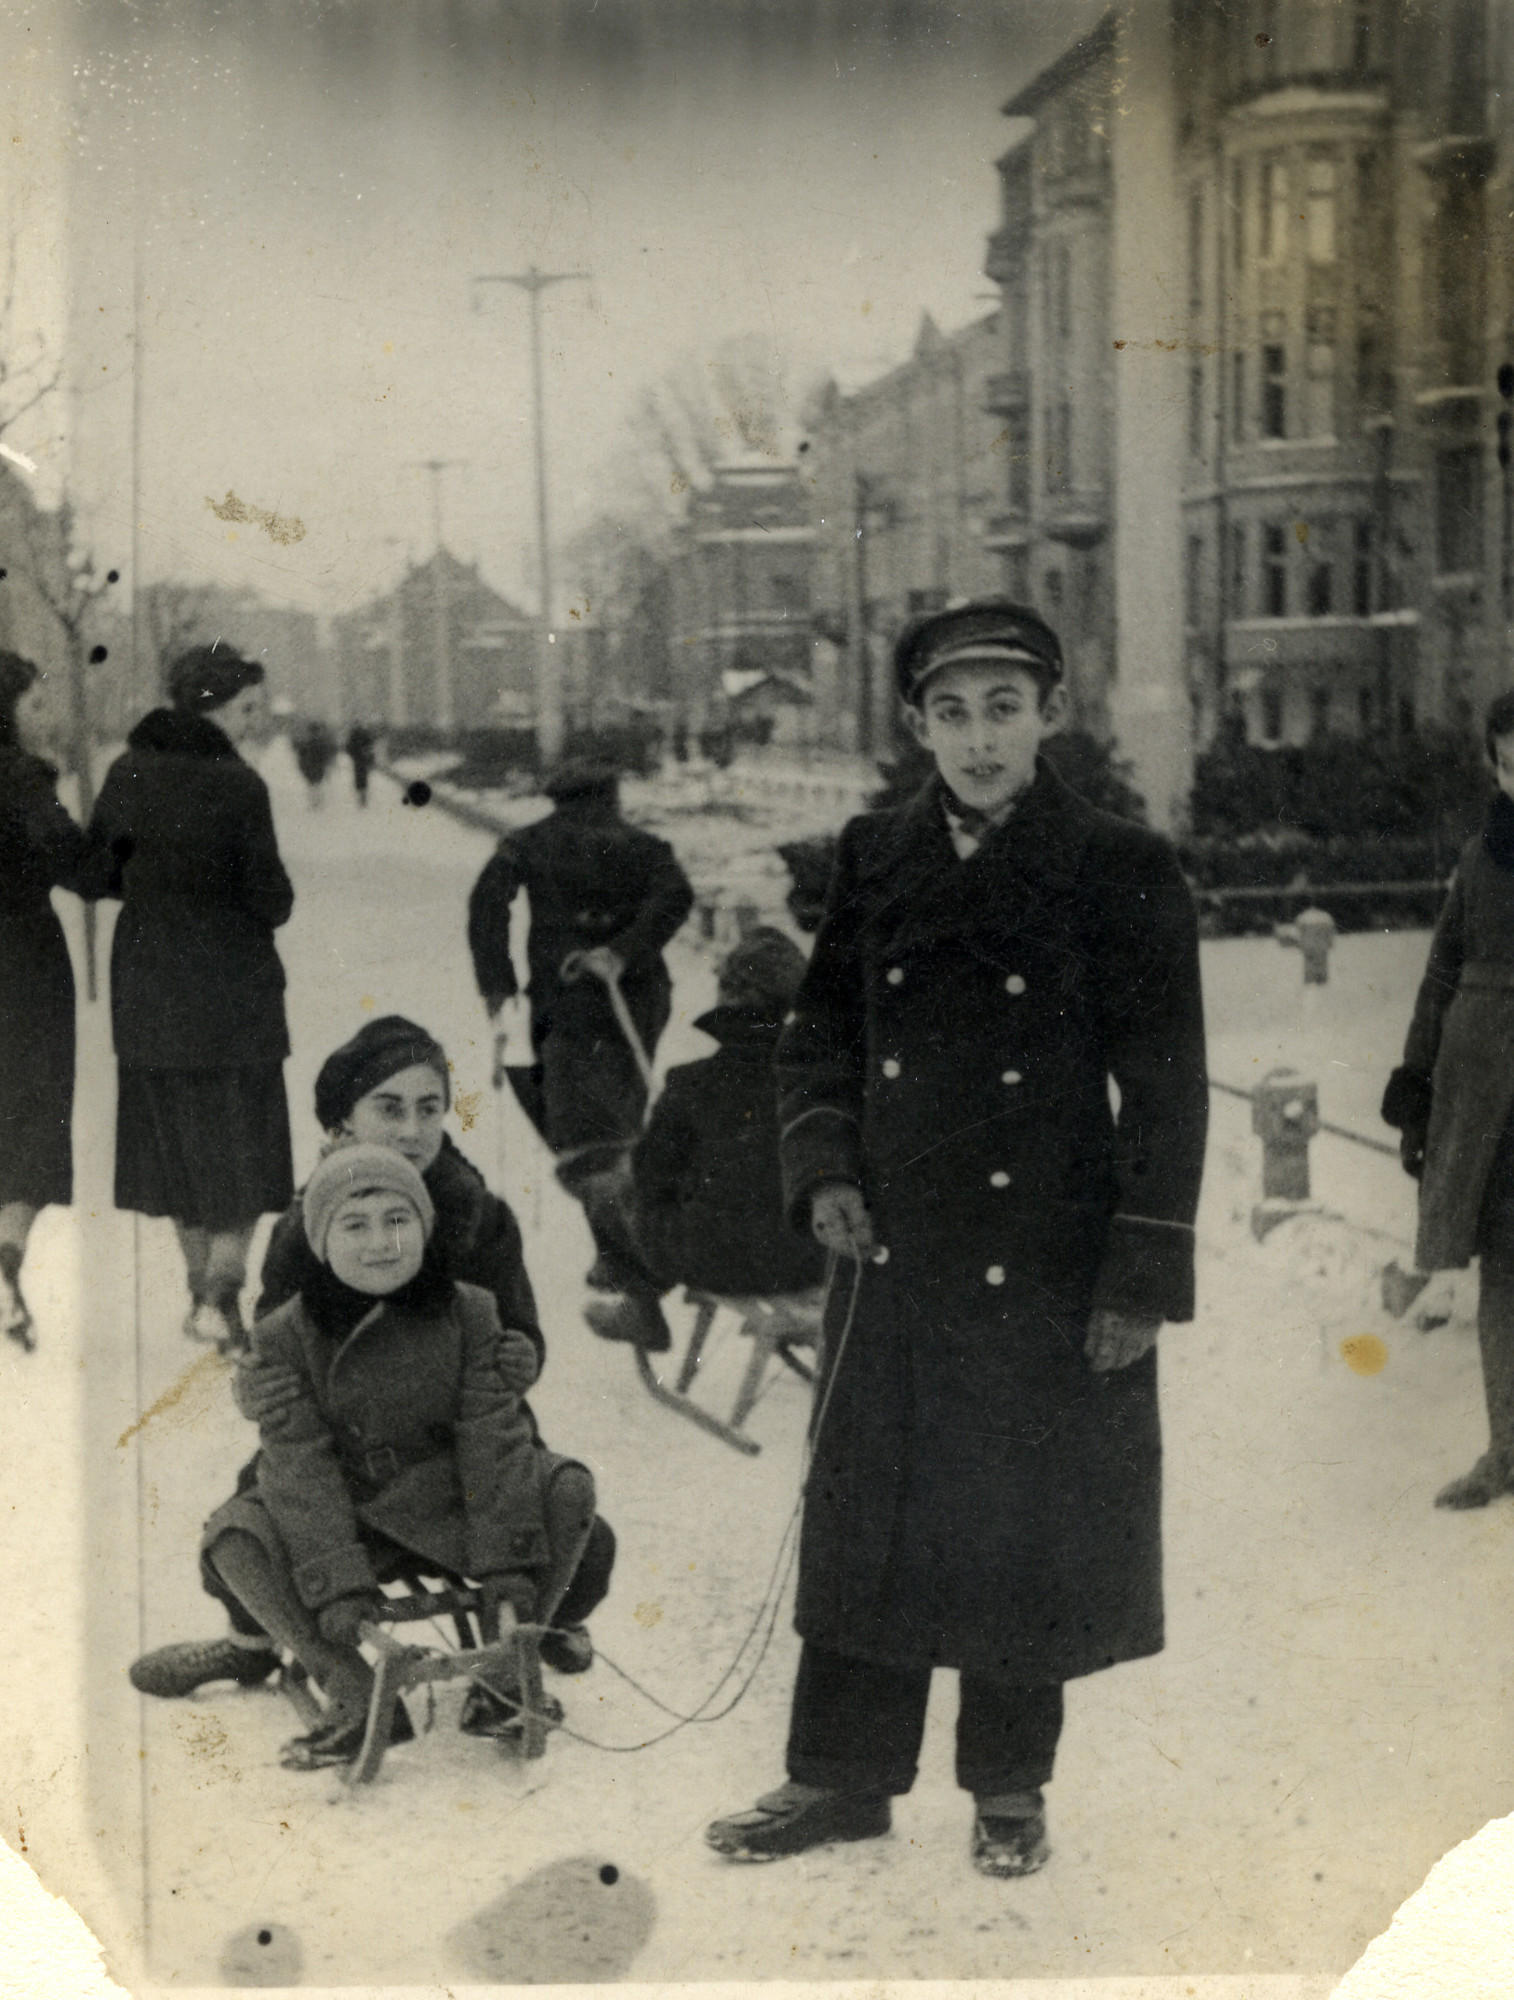 Jewish siblings go sledding in the streets of Kalisz, Poland.  Pictured in front are Ester and Michael Gluba (seated on the sled), with Szamszon Gluba (standing, pulling the sled).